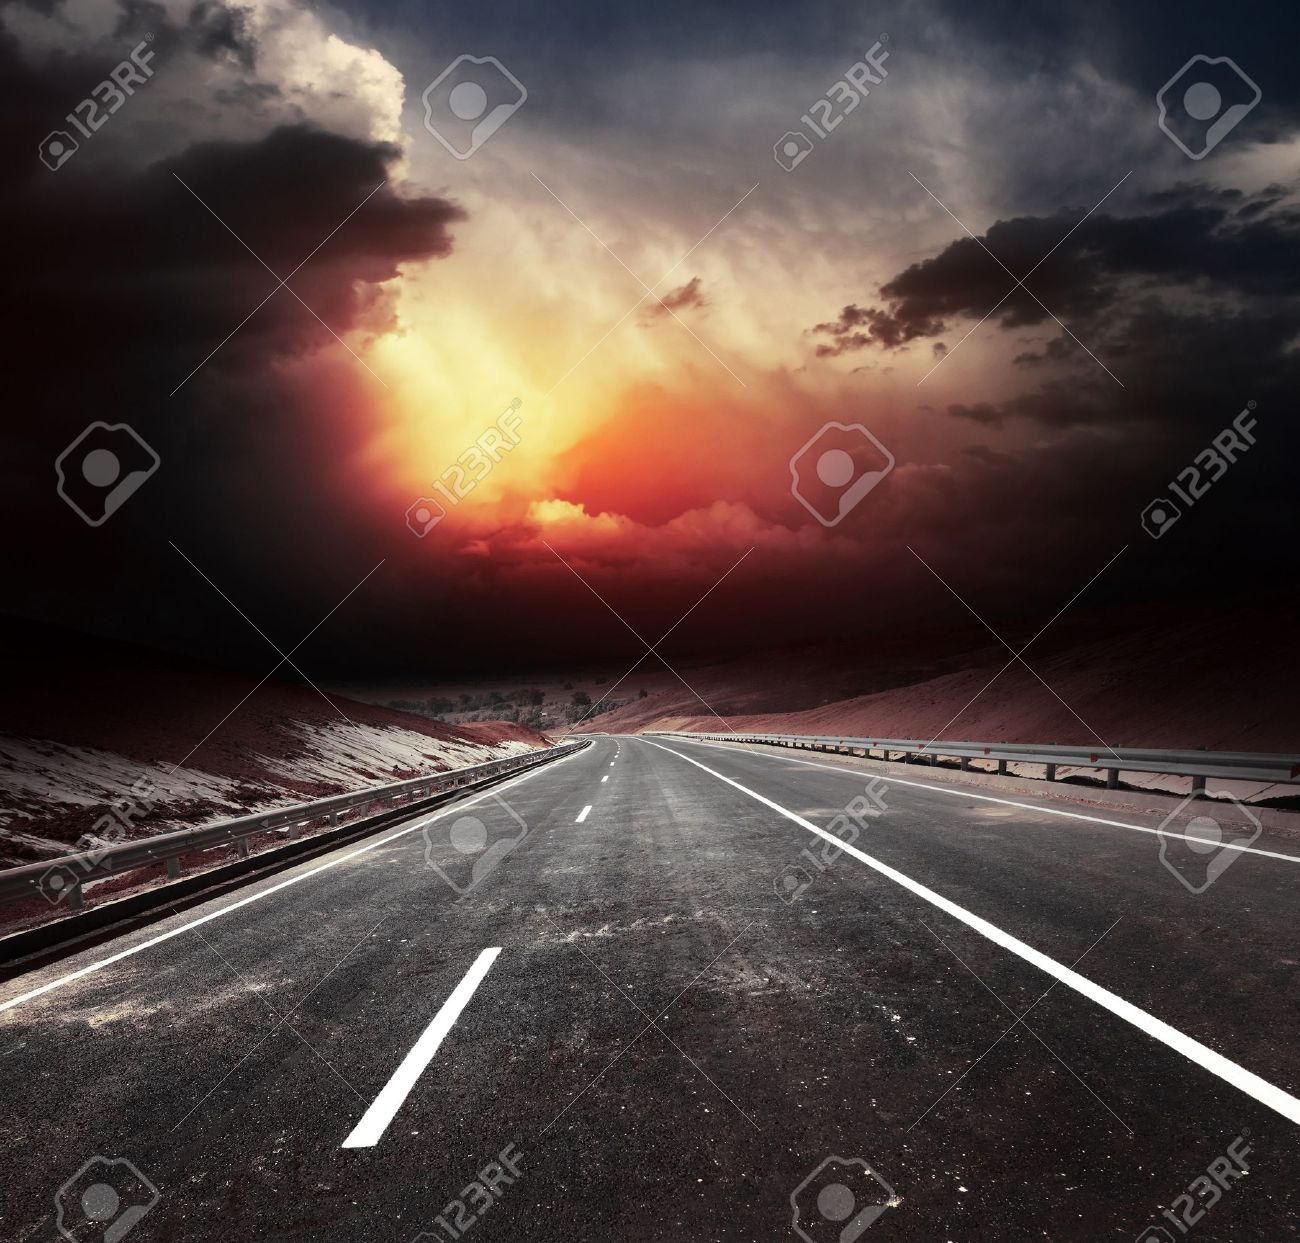 Dirty asphalt road and dark thunder clouds Stock Photo - 11540932